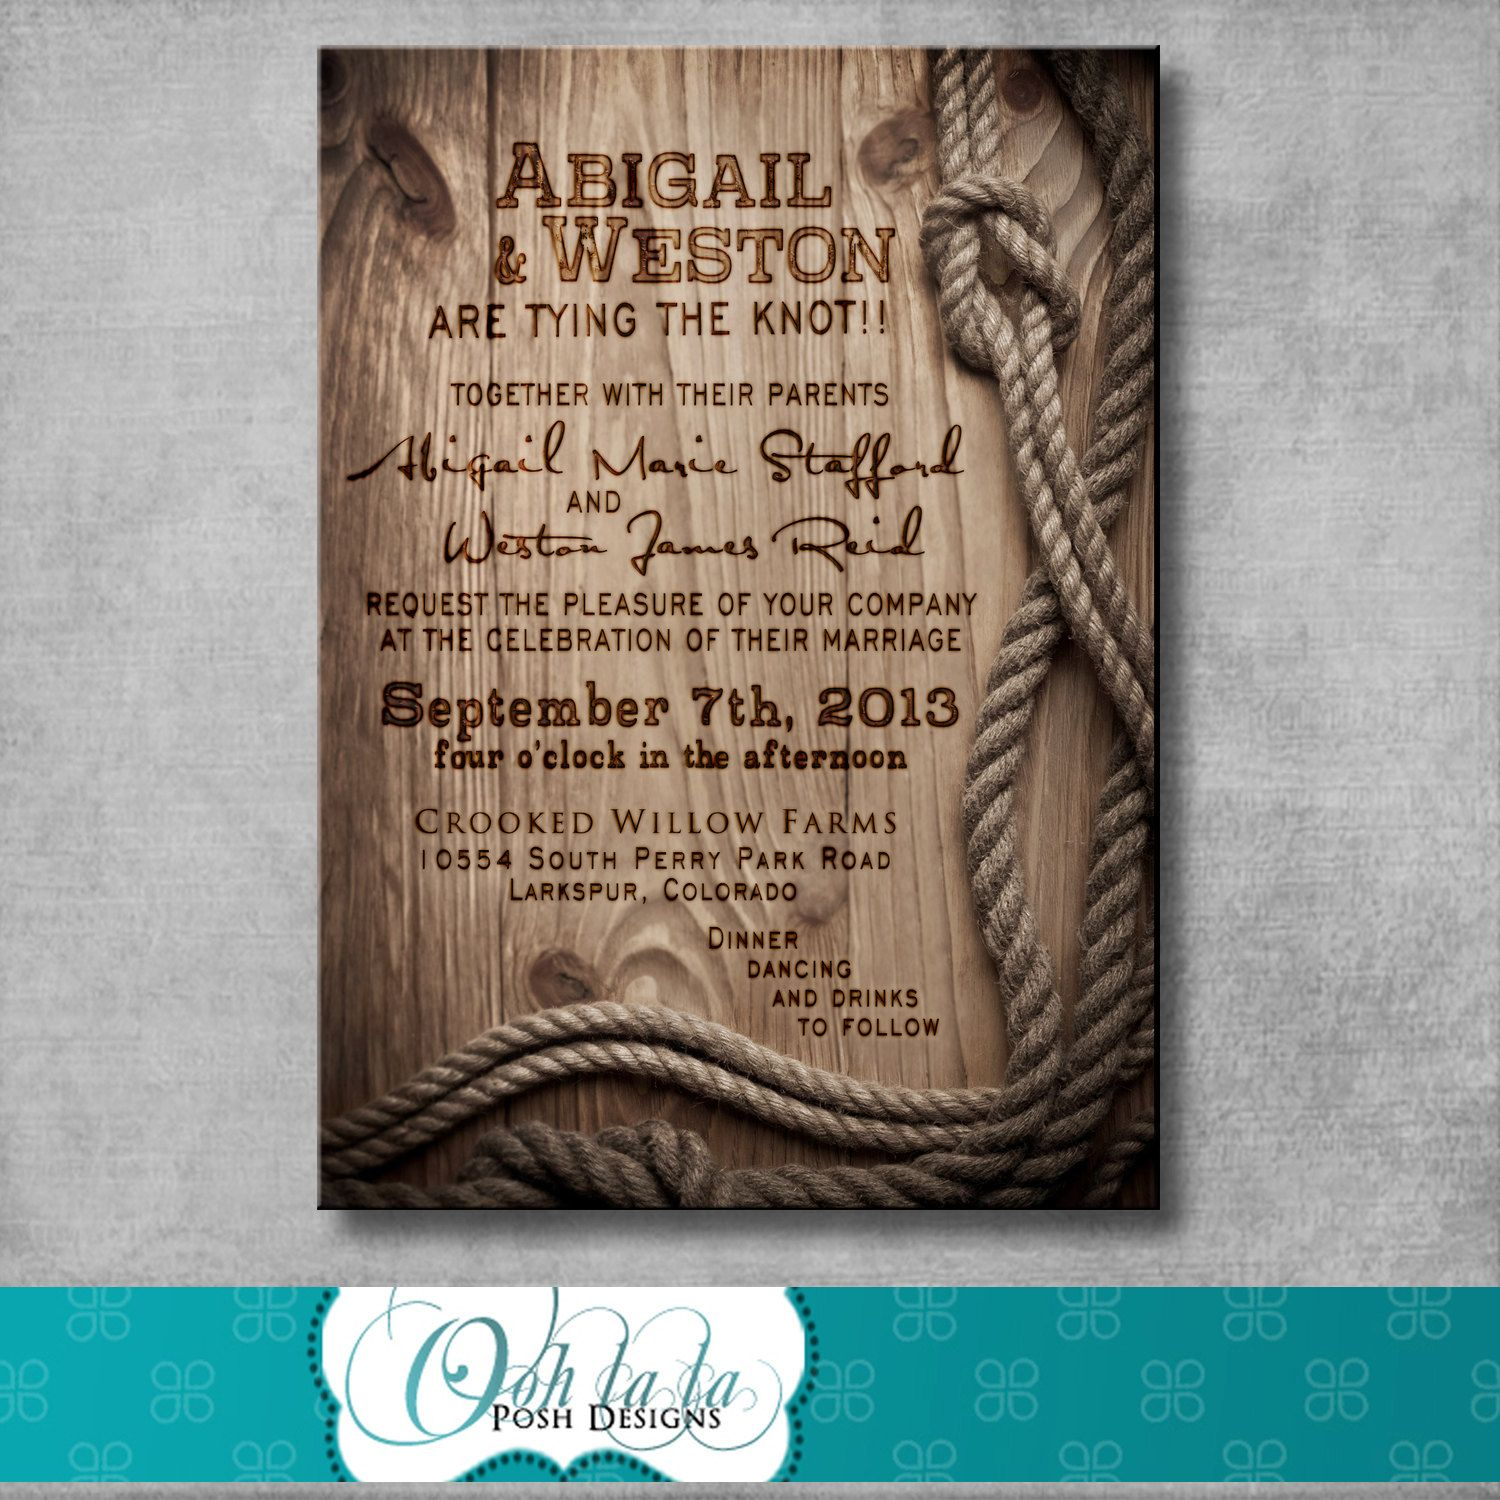 f5019fb56e49b34a124a5eb4107fddaa - Printable Western Wedding Invitations Free